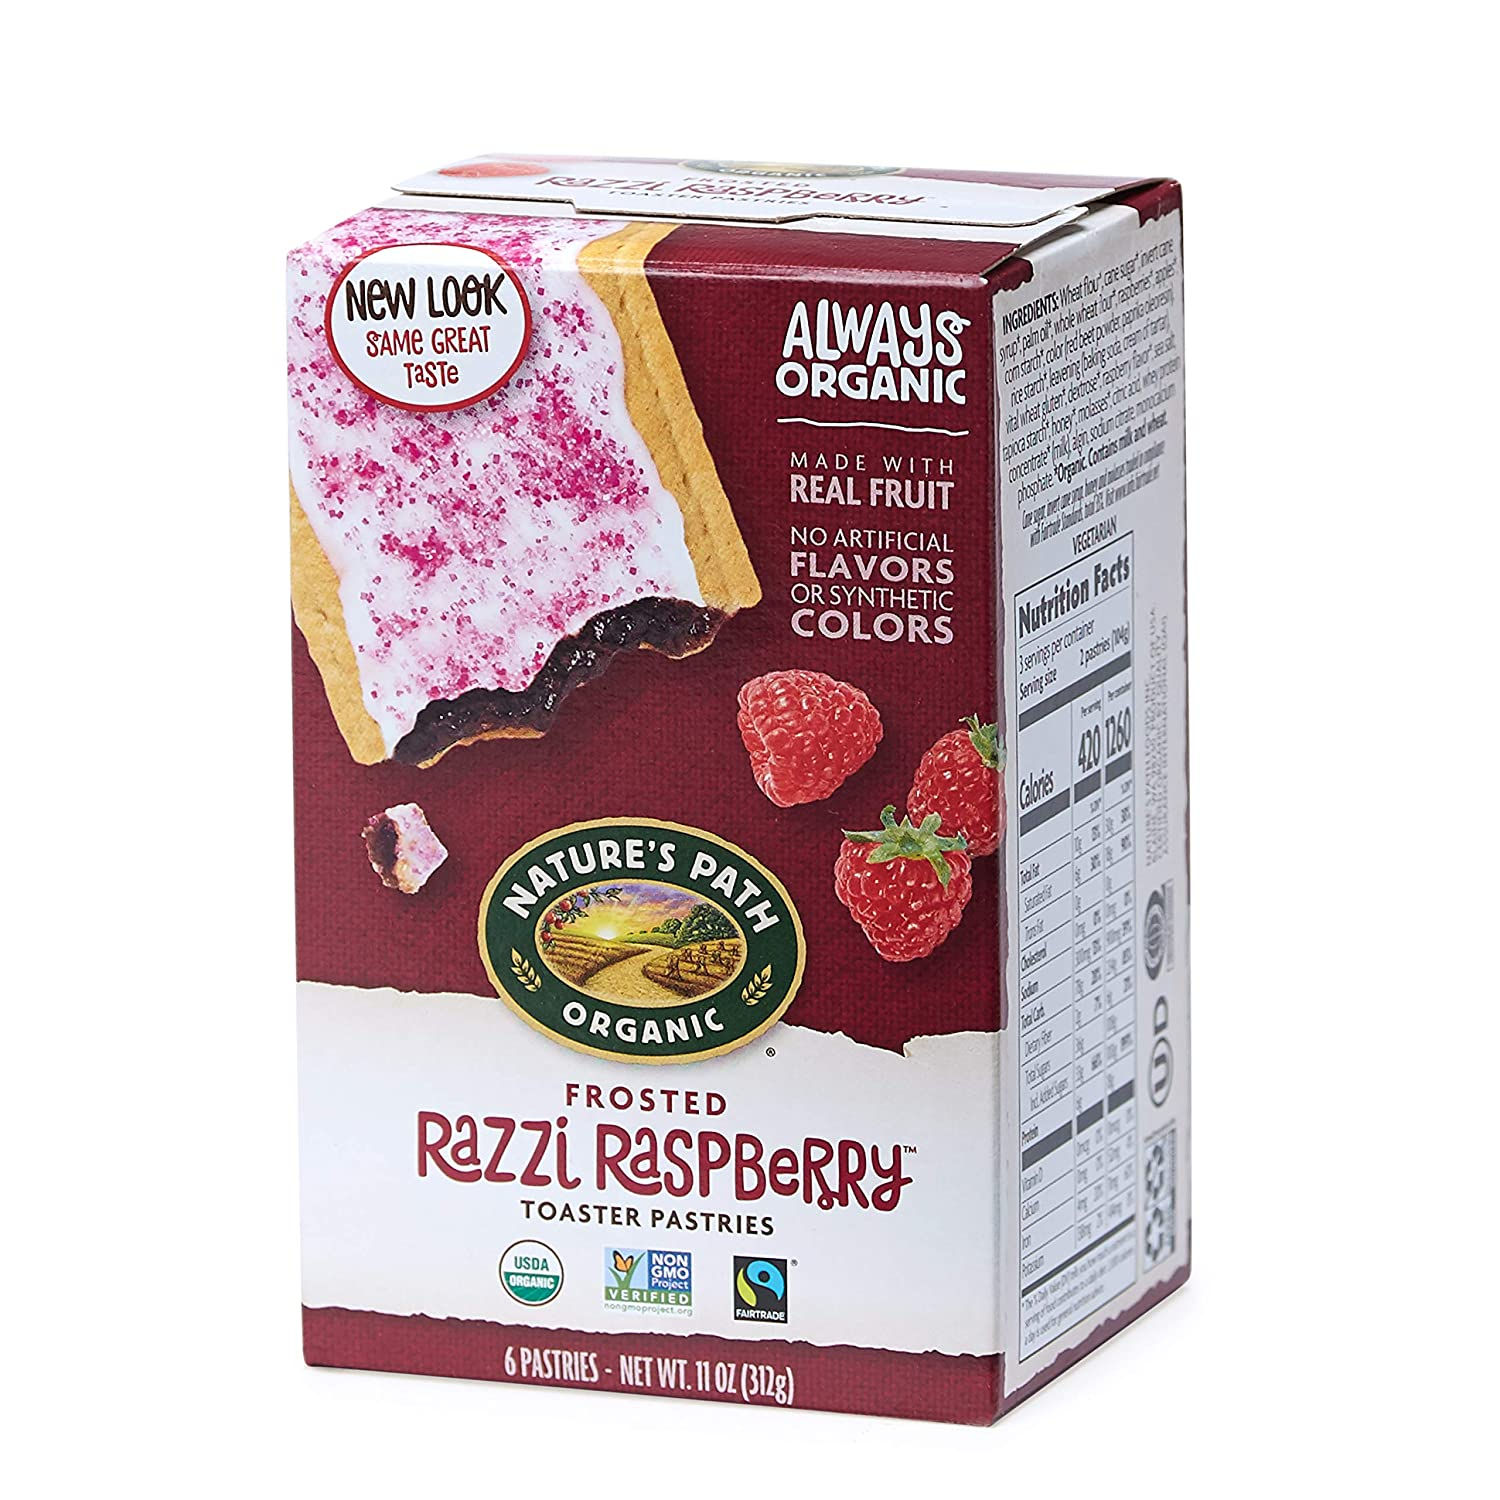 Nature's Path Frosted Razzi Raspberry Toaster Pastries, Healthy, Organic, 6 Count per pack, Pack of 12